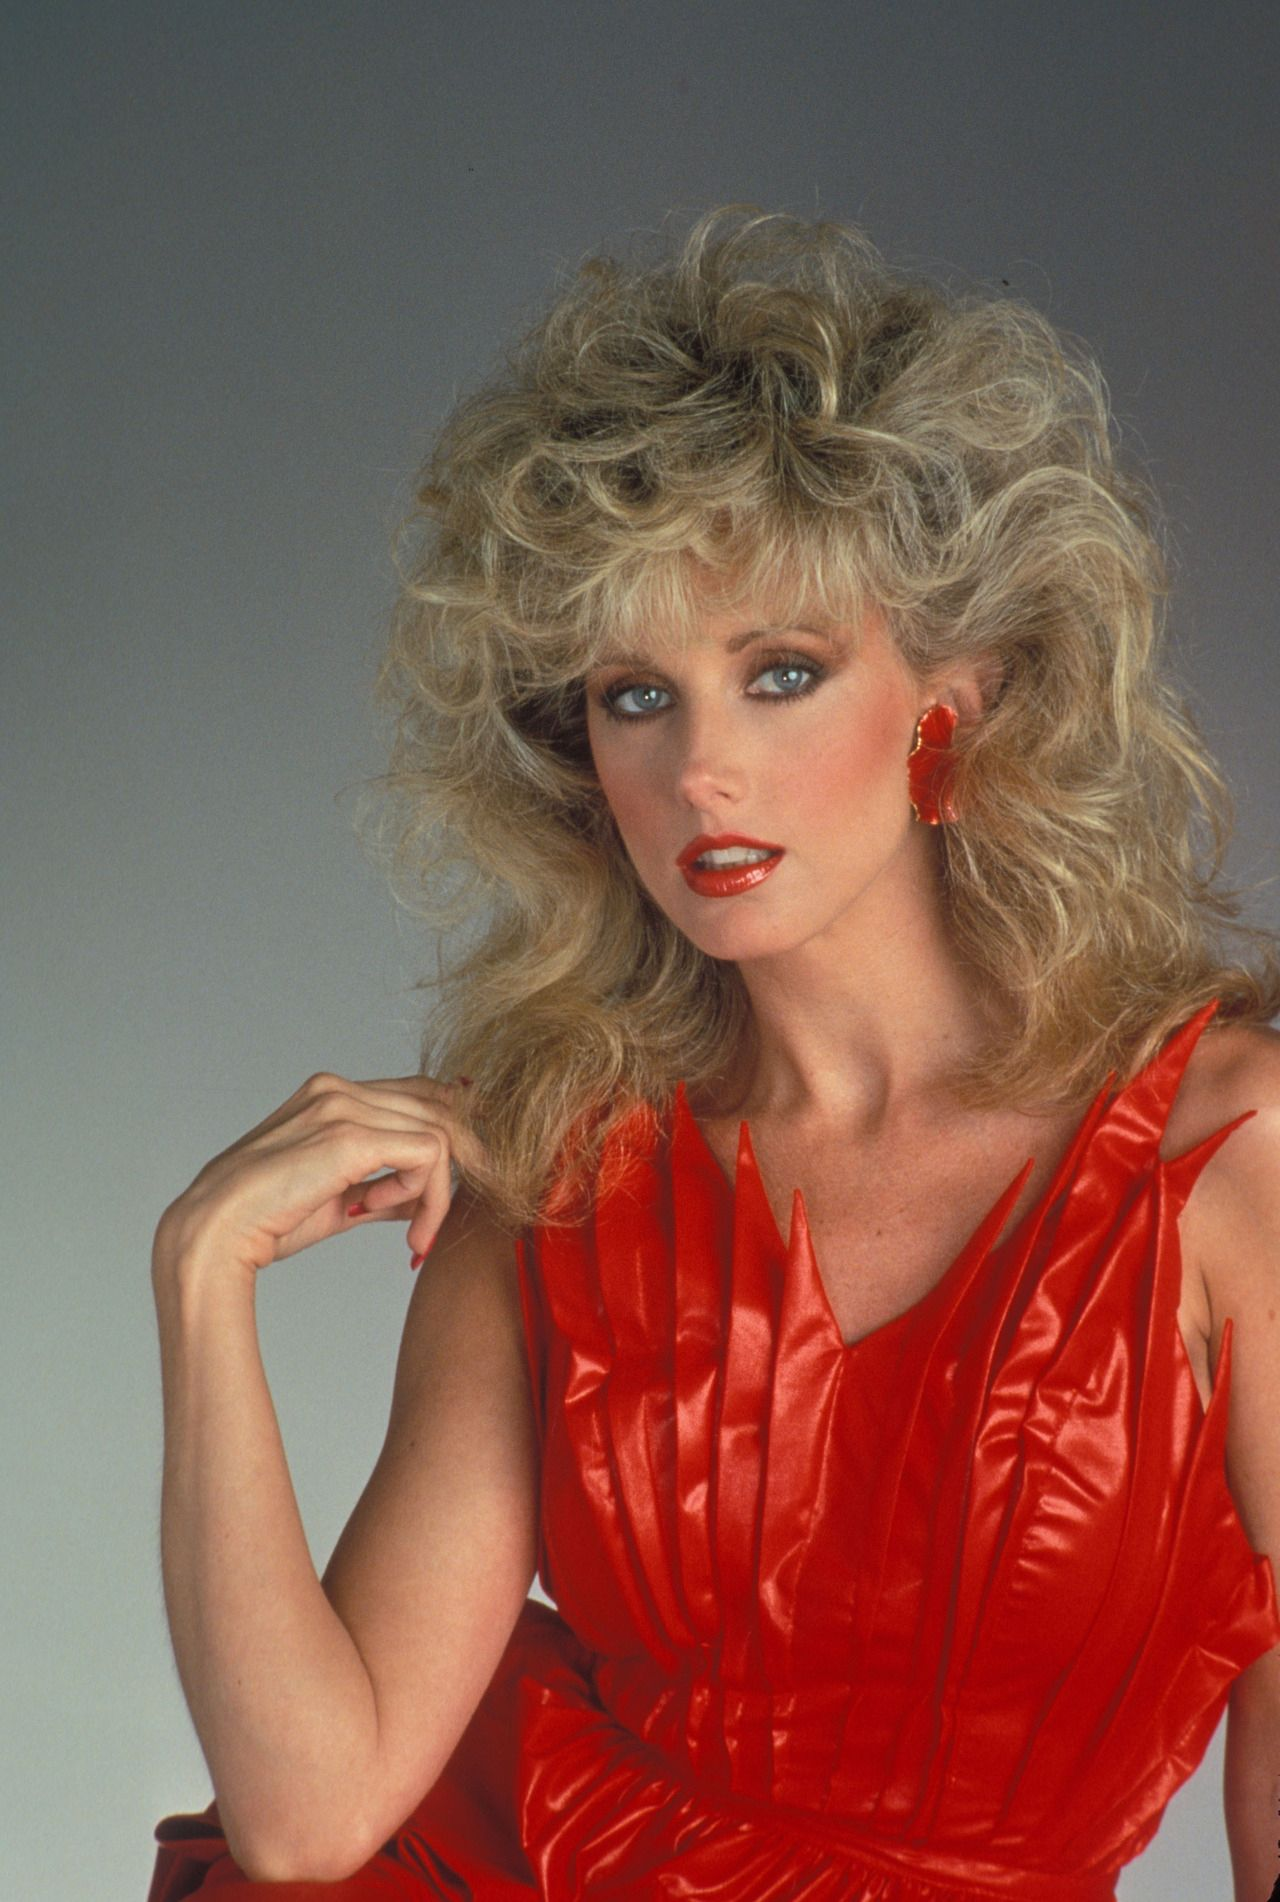 morgan fairchild 80s babe teasted hair red dress